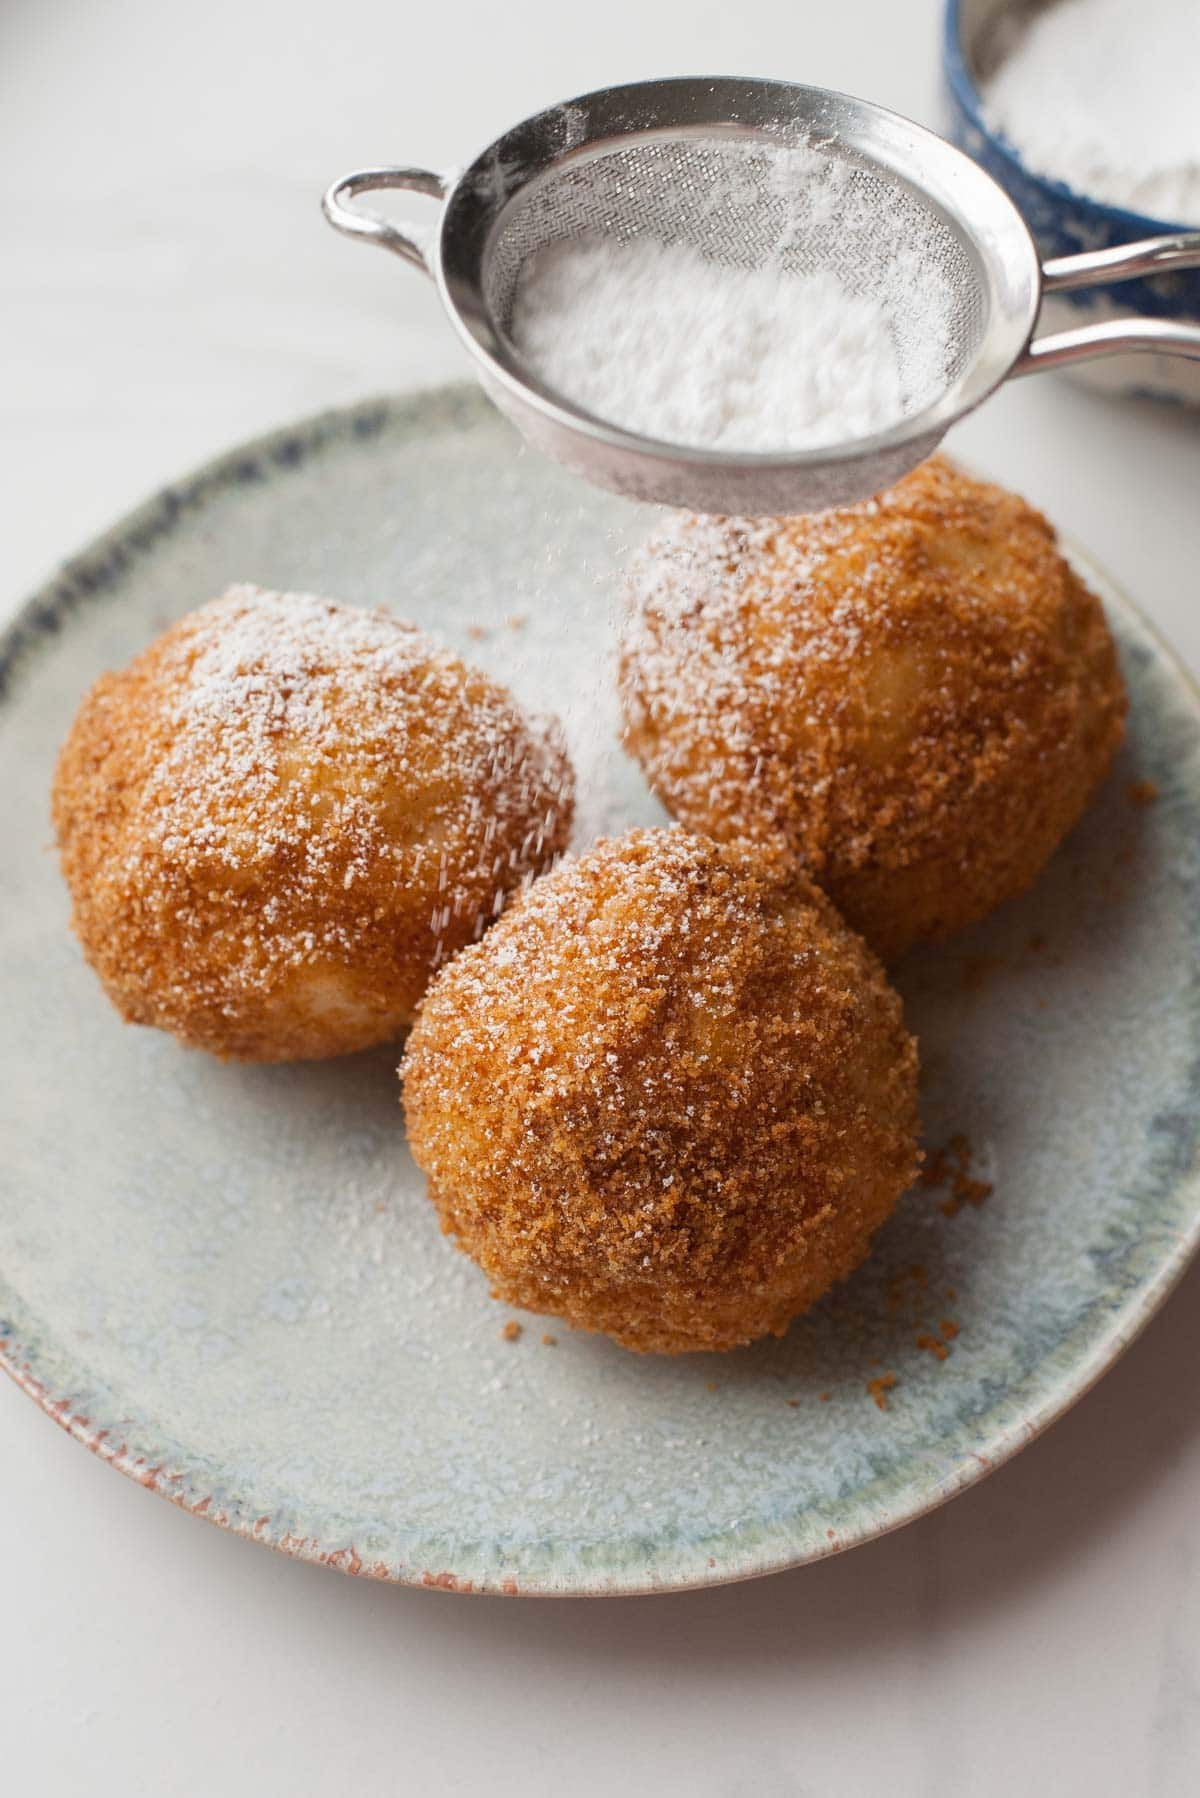 apricot dumplings on a green plate are being sprinkled with powedered sugar